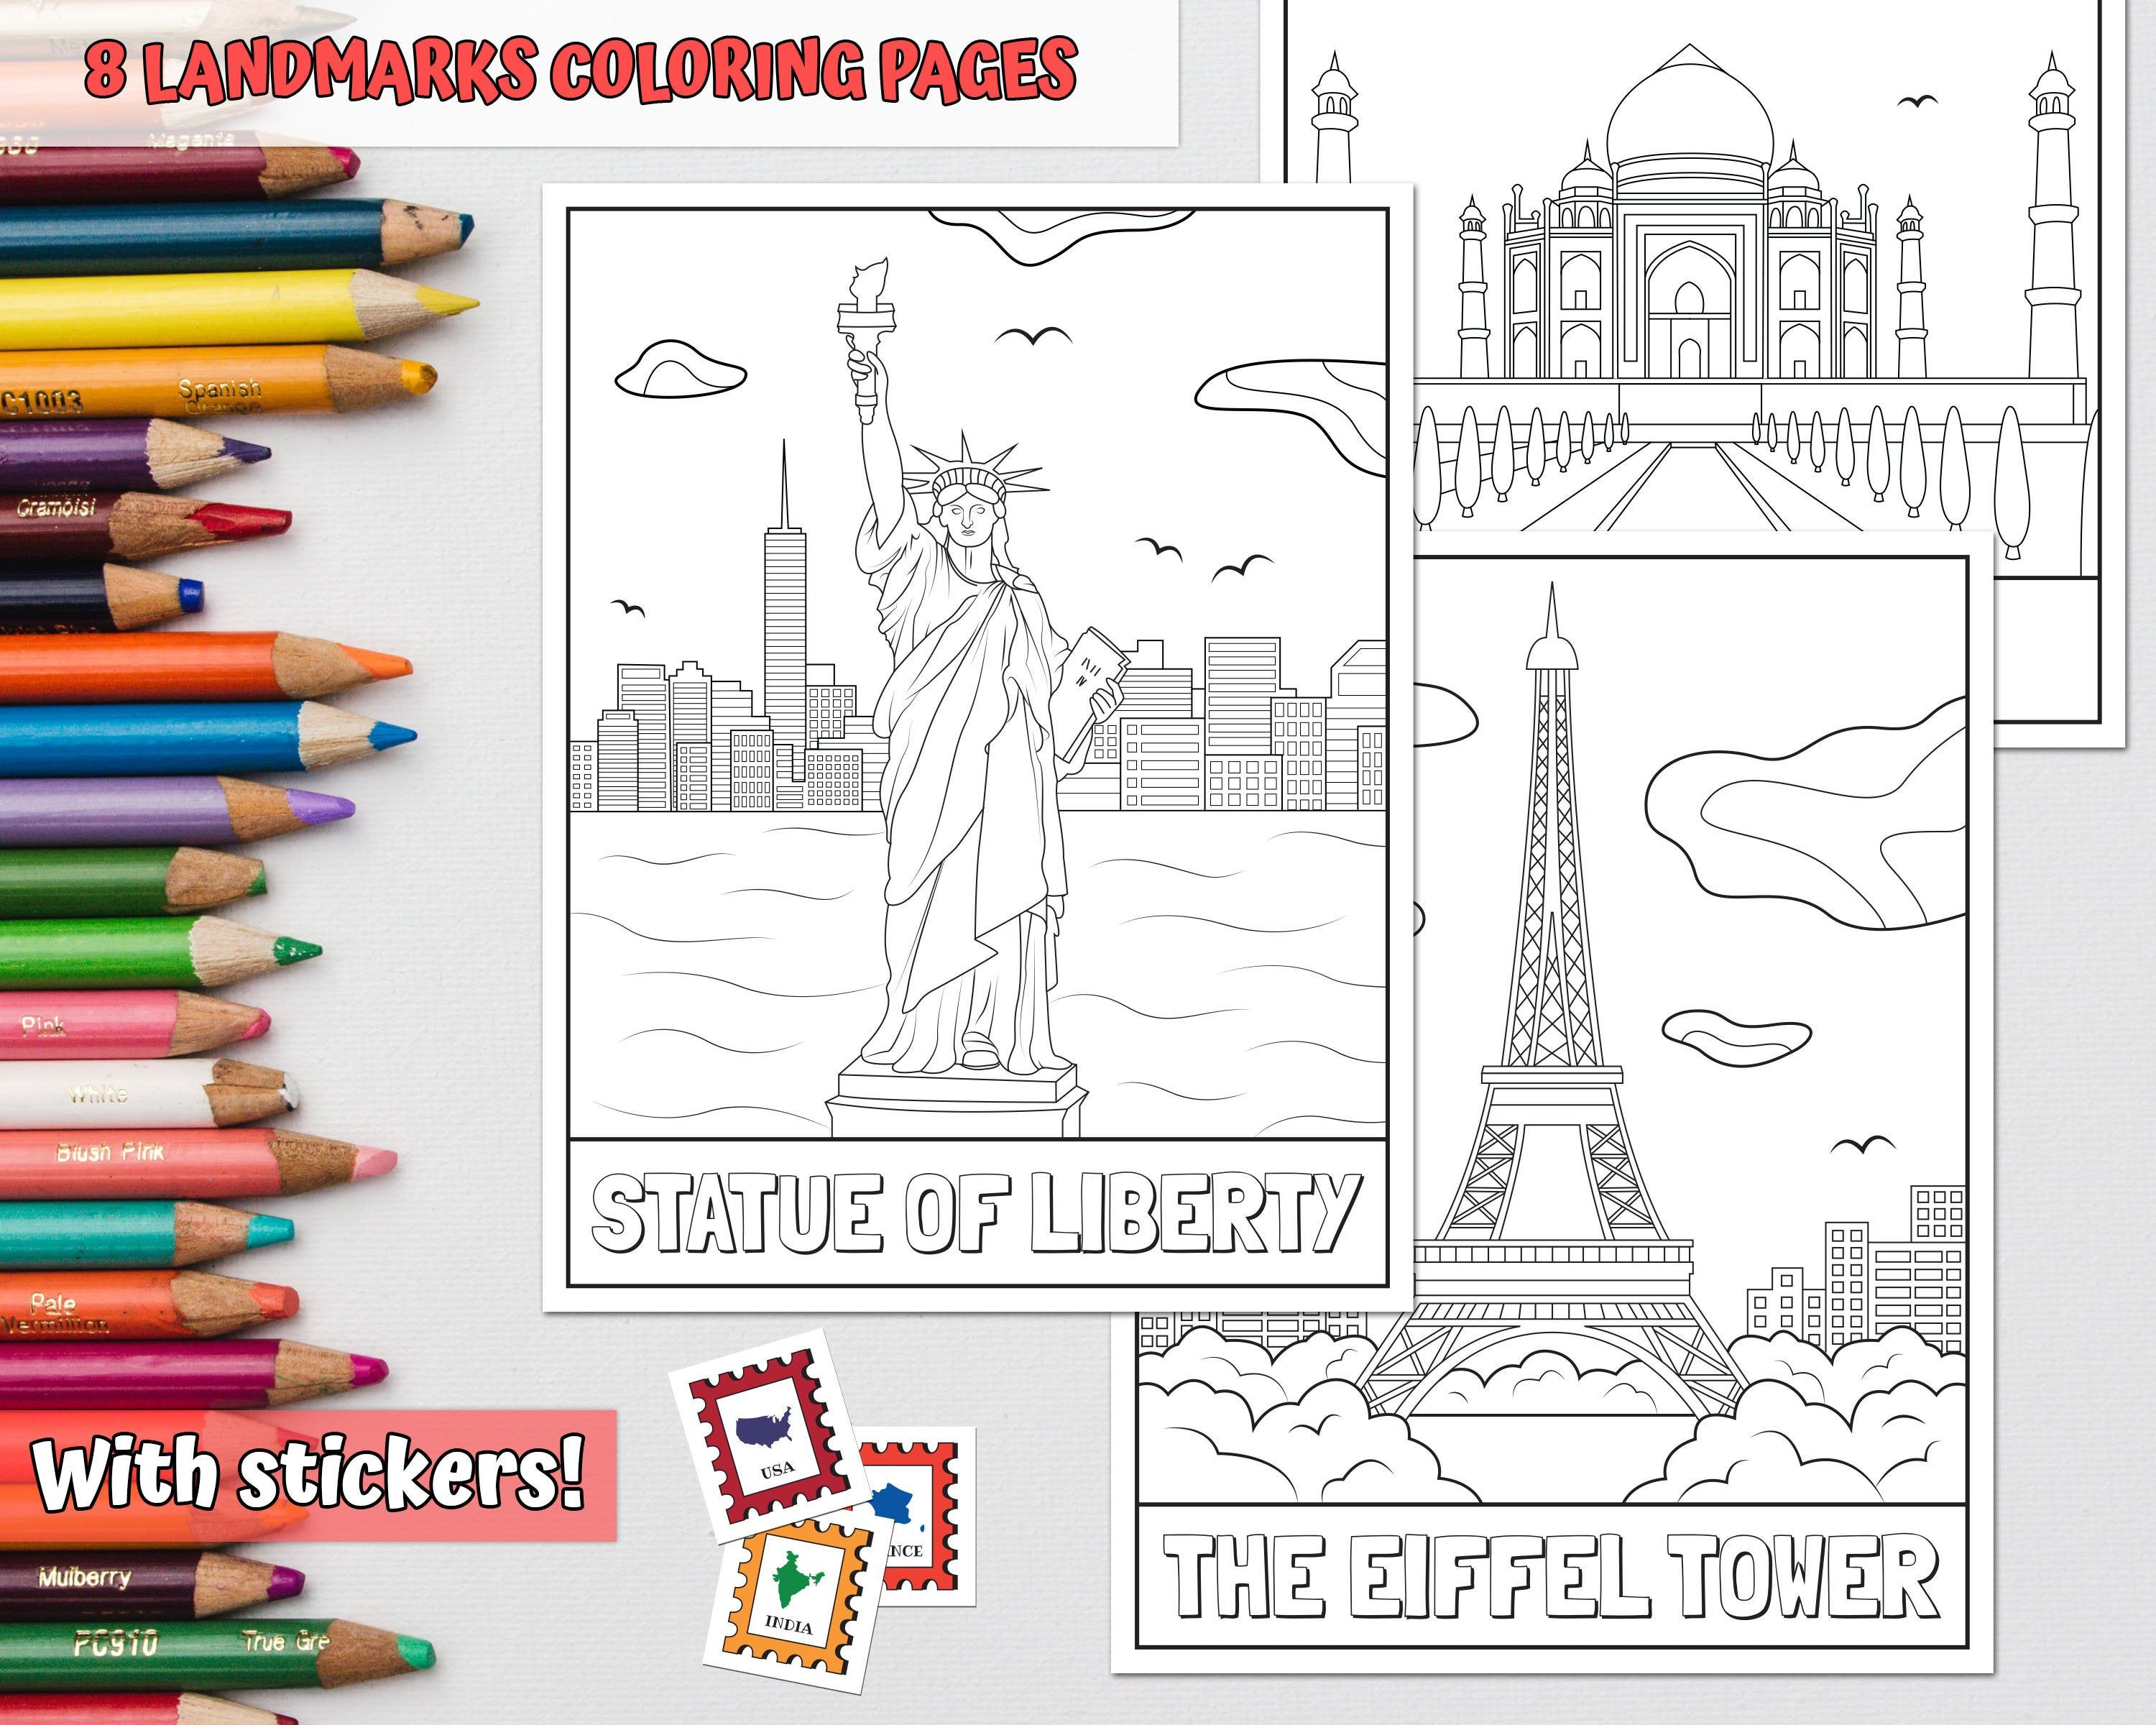 Landmark Coloring Pages Printable Travel Coloring Book Etsy Coloring Pages Coloring For Kids Animal Coloring Books